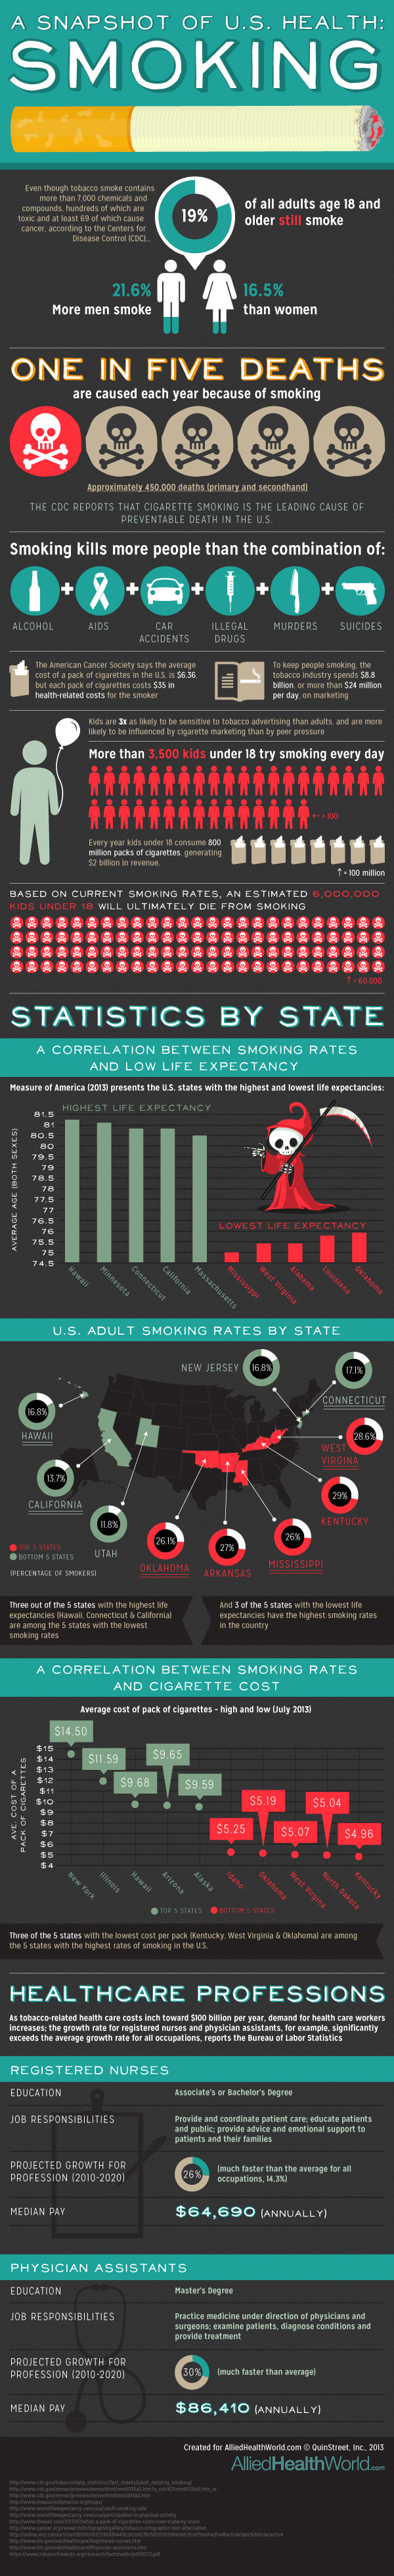 State of Health: Smoking in the U.S.